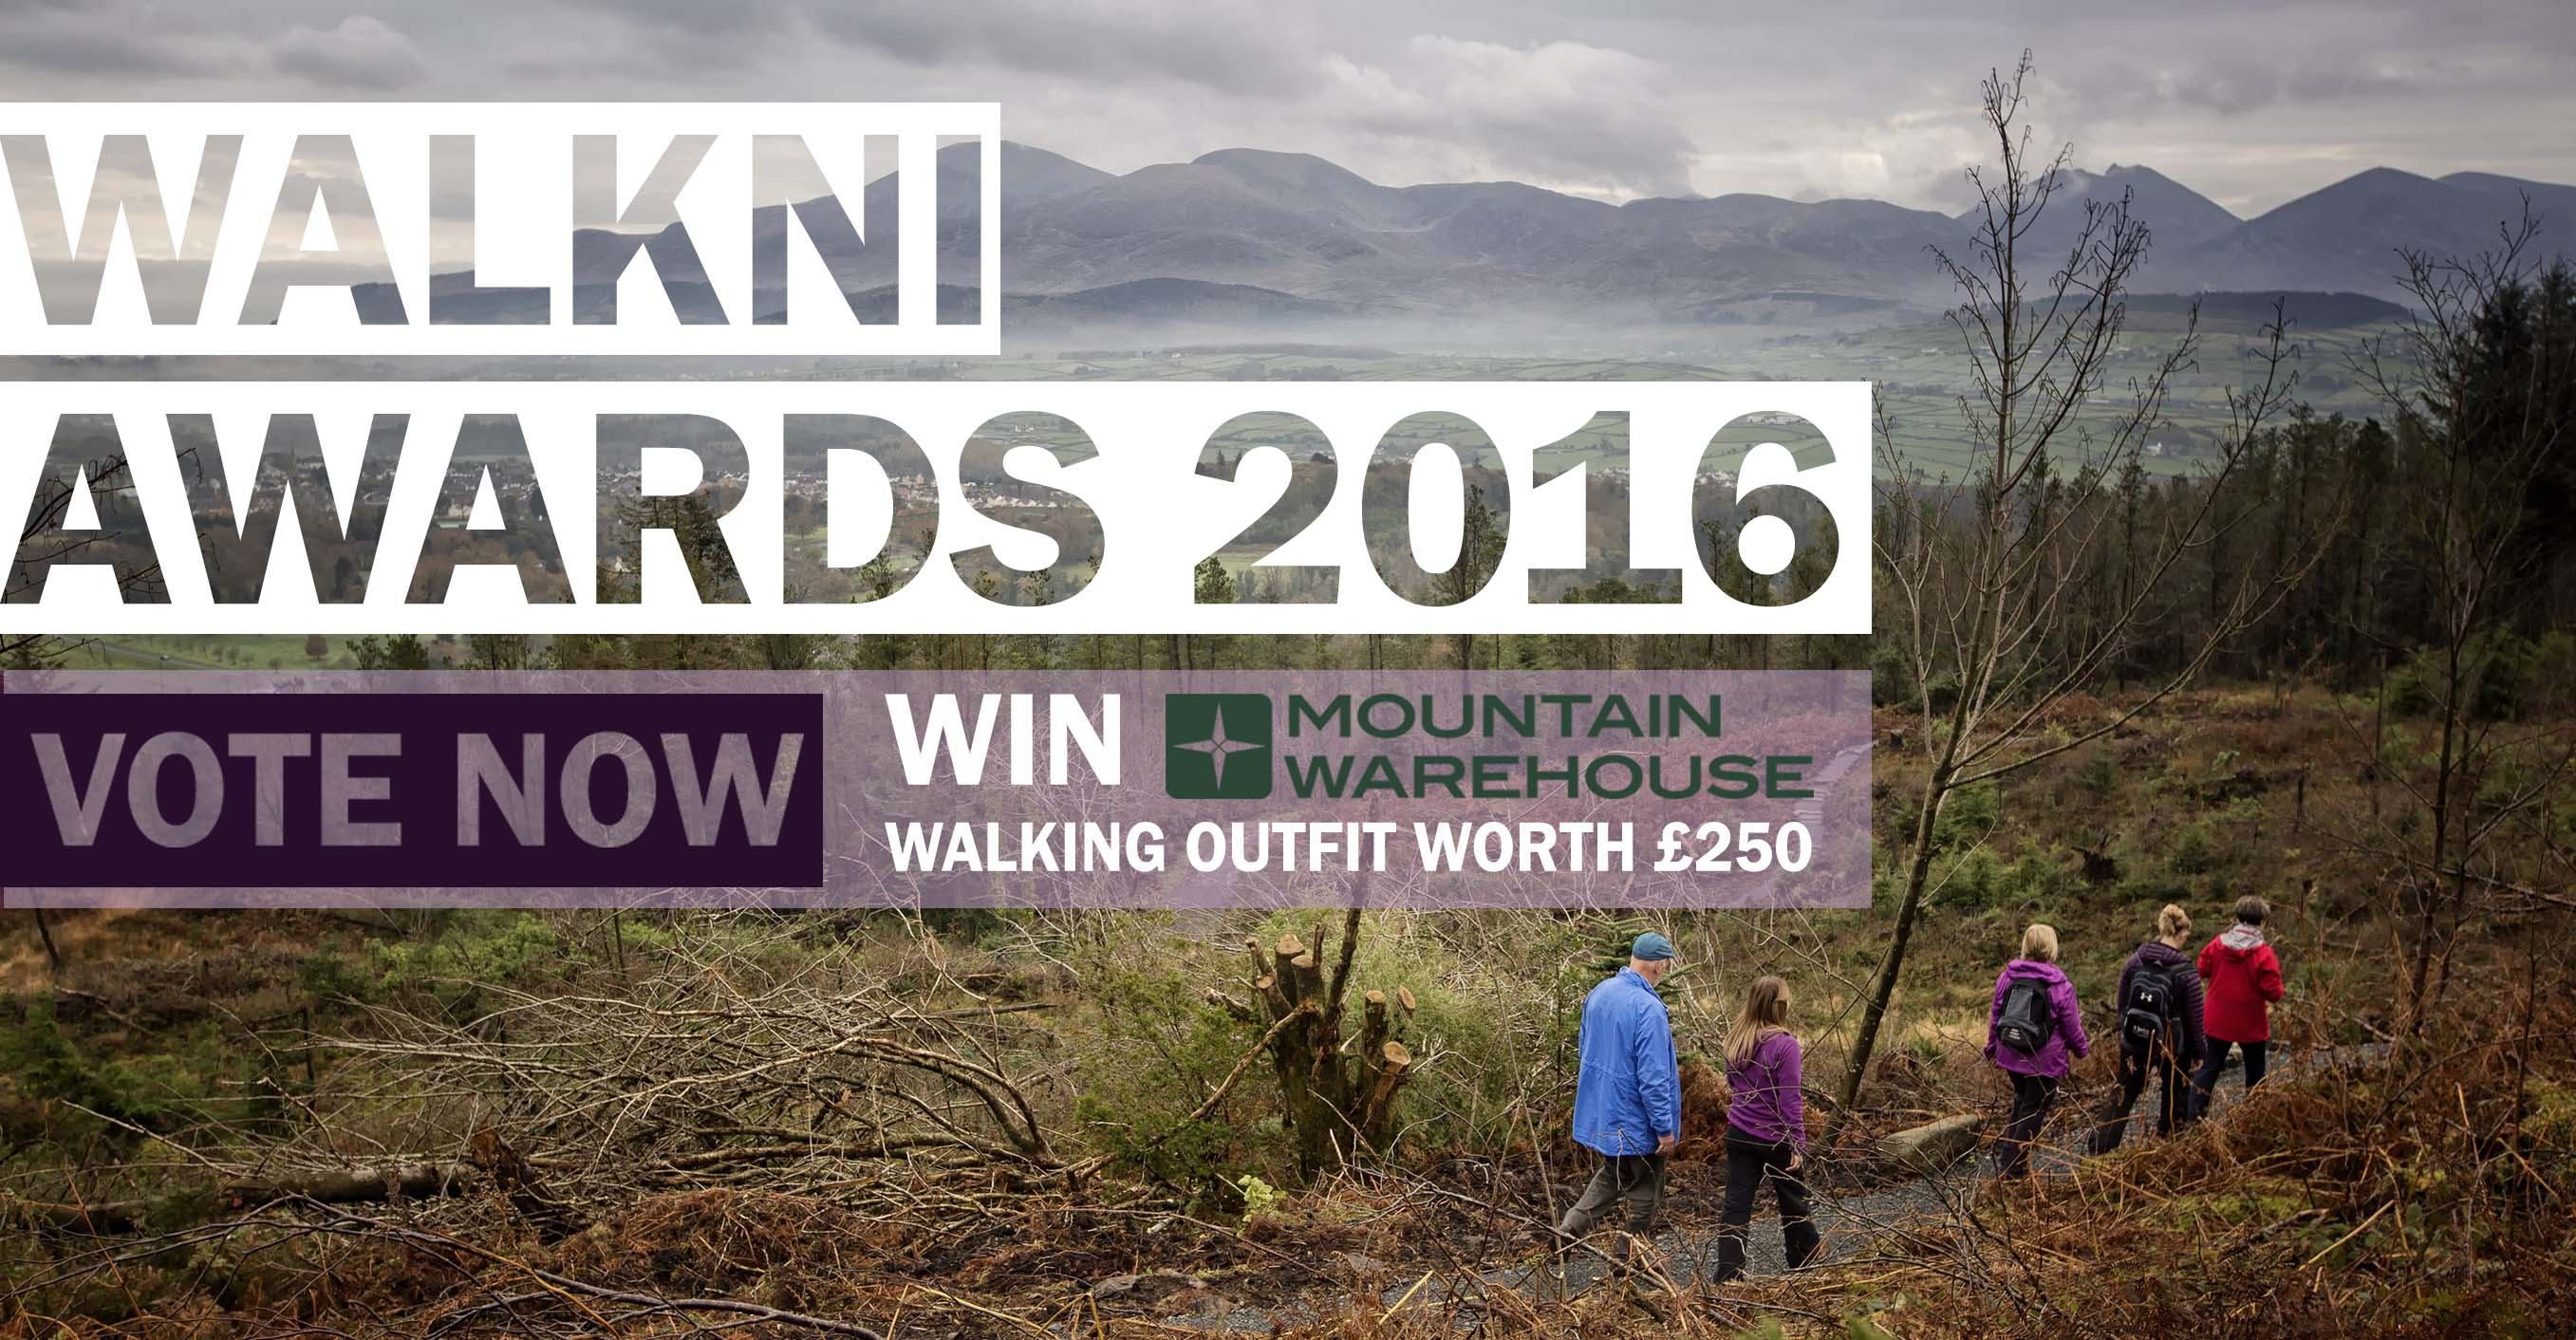 WalkNI Awards Vote Now